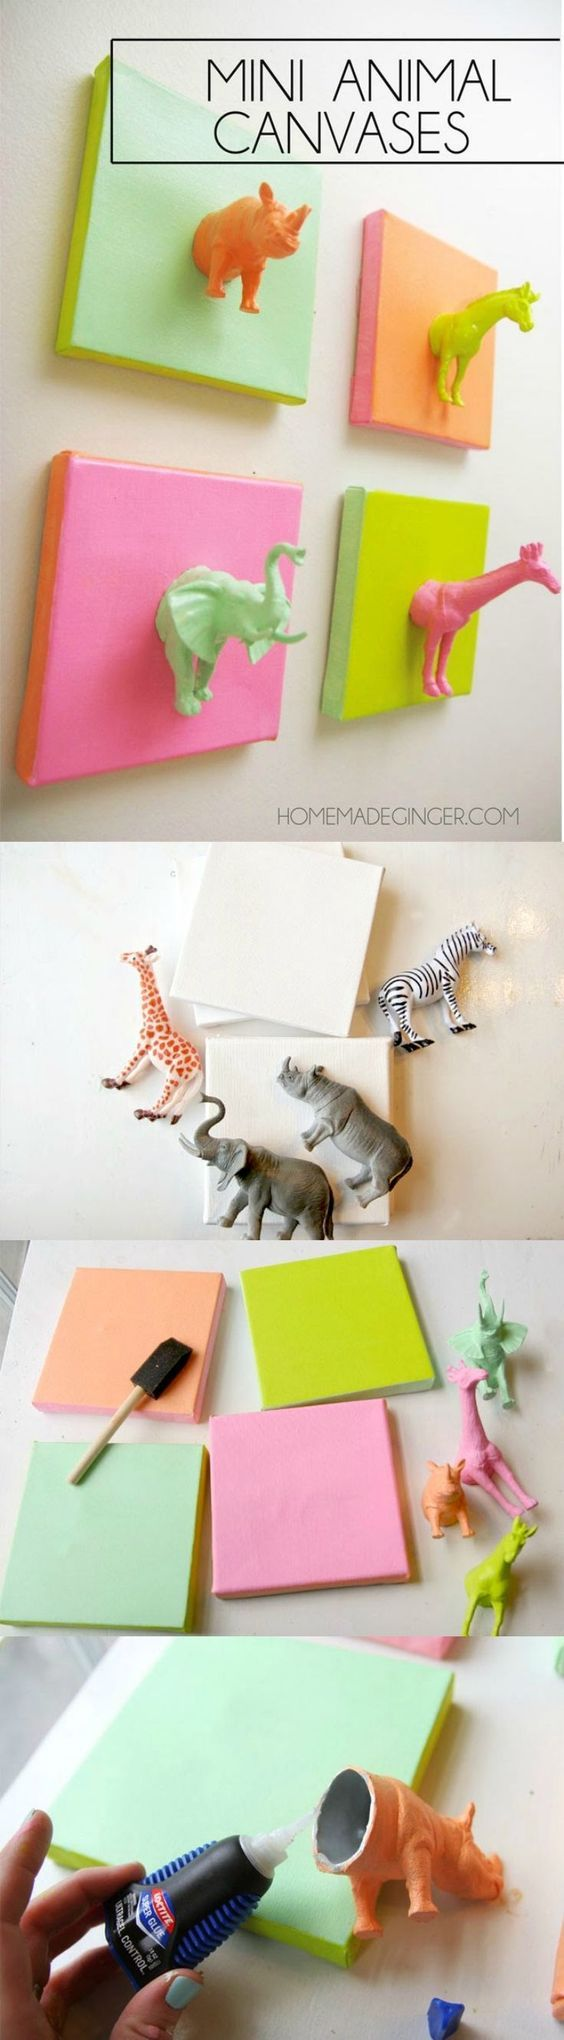 This cute DIY canvas project made with plastic animals is such a fun and easy idea